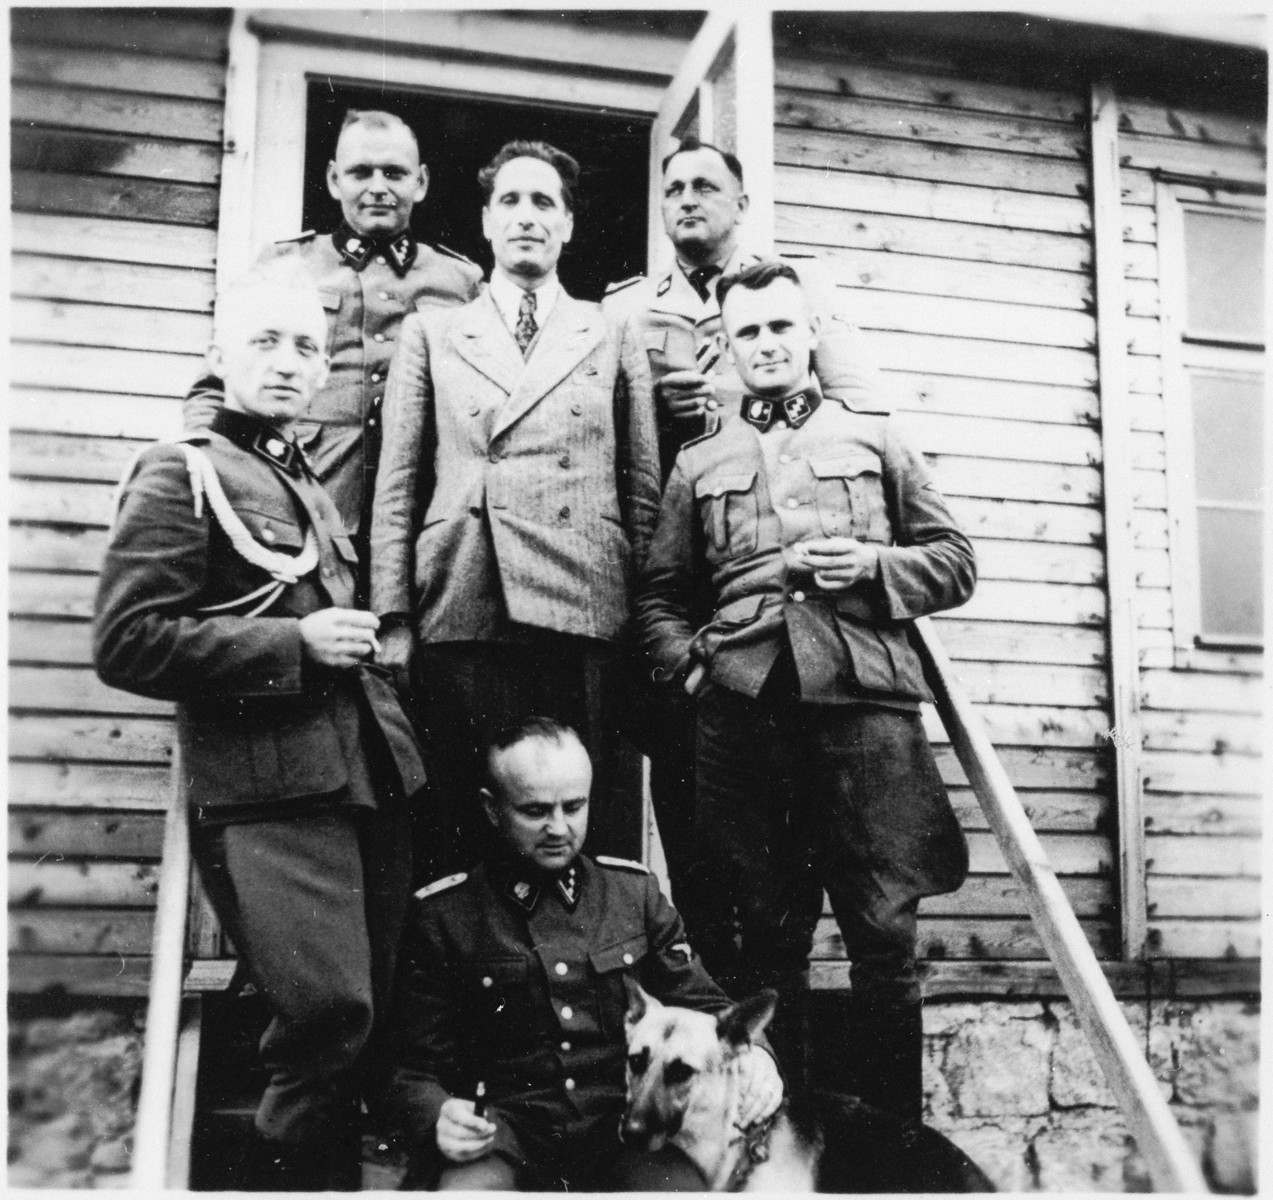 A group of SS officers stand on the steps of a building at the Gross-Rosen concentration camp.  Standing on the far left is the adjutant, Kuno Schramm.  Michl is standing behind him on the top left.  The Commandant Arthur Roedl is on the top right.  Beneath him is including Anton Thumann (bottom right).